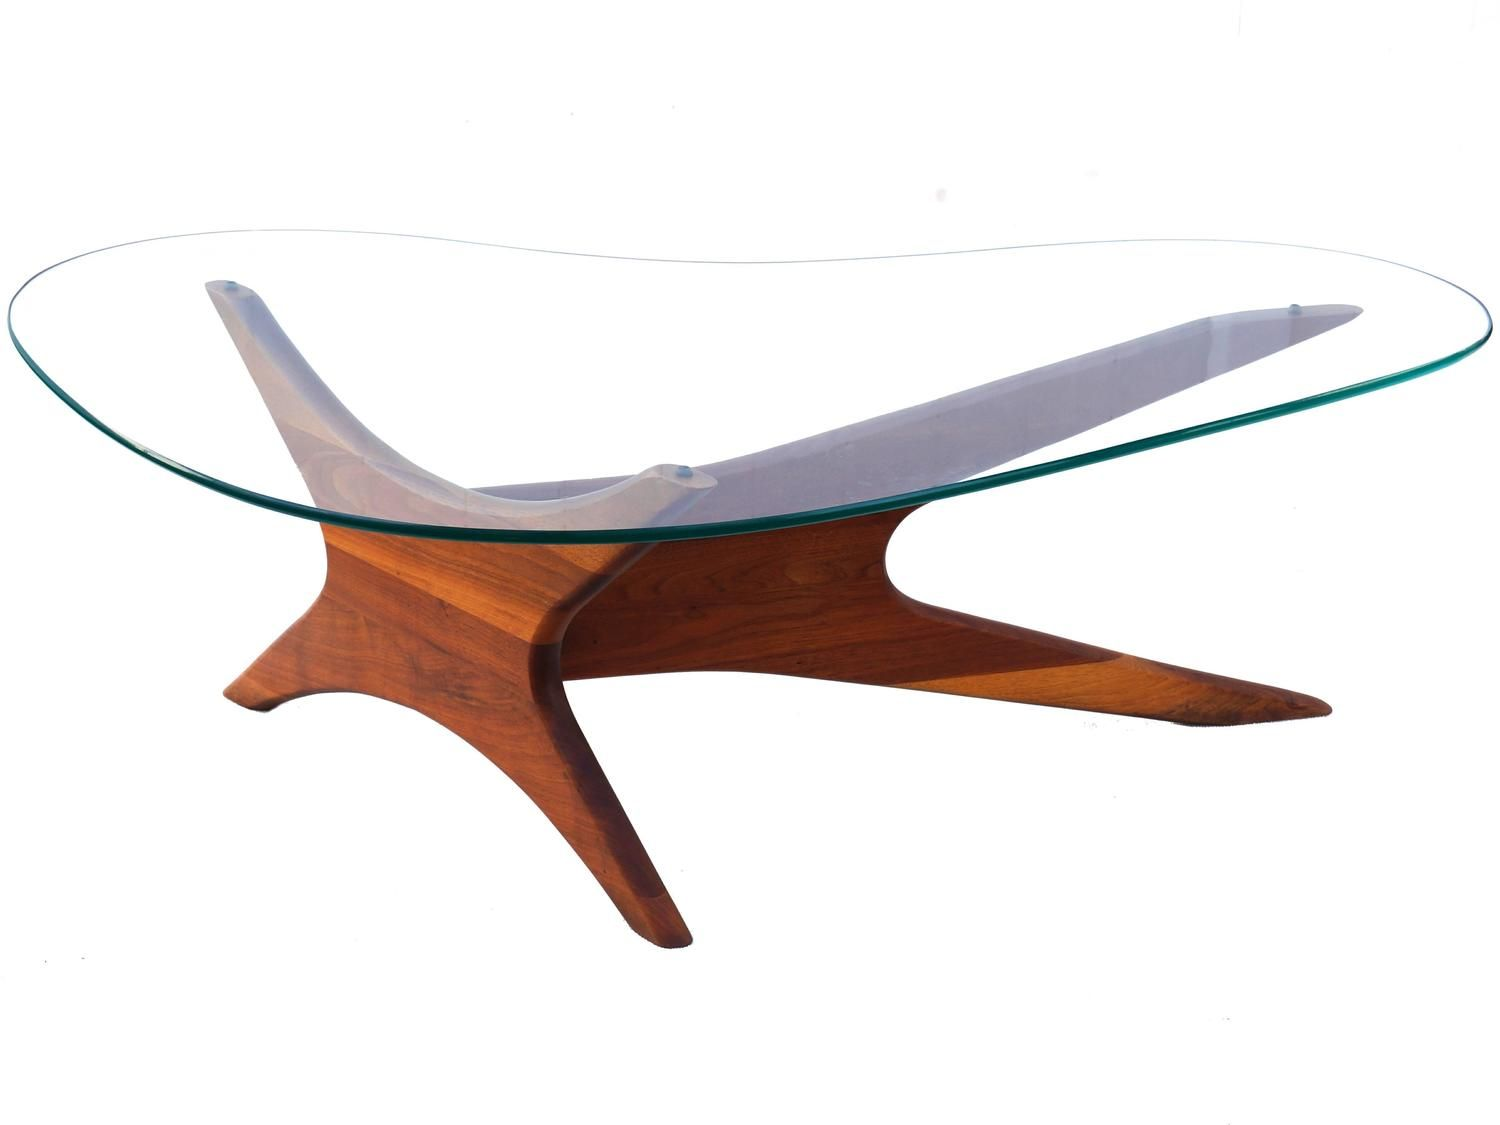 Adrian Pearsall Biomorphic Kidney Shaped Glass Coffee Table Mid Century Modern Glass Coffee Table Mid Century Modern Coffee Table Mid Century Coffee Table [ 1125 x 1500 Pixel ]